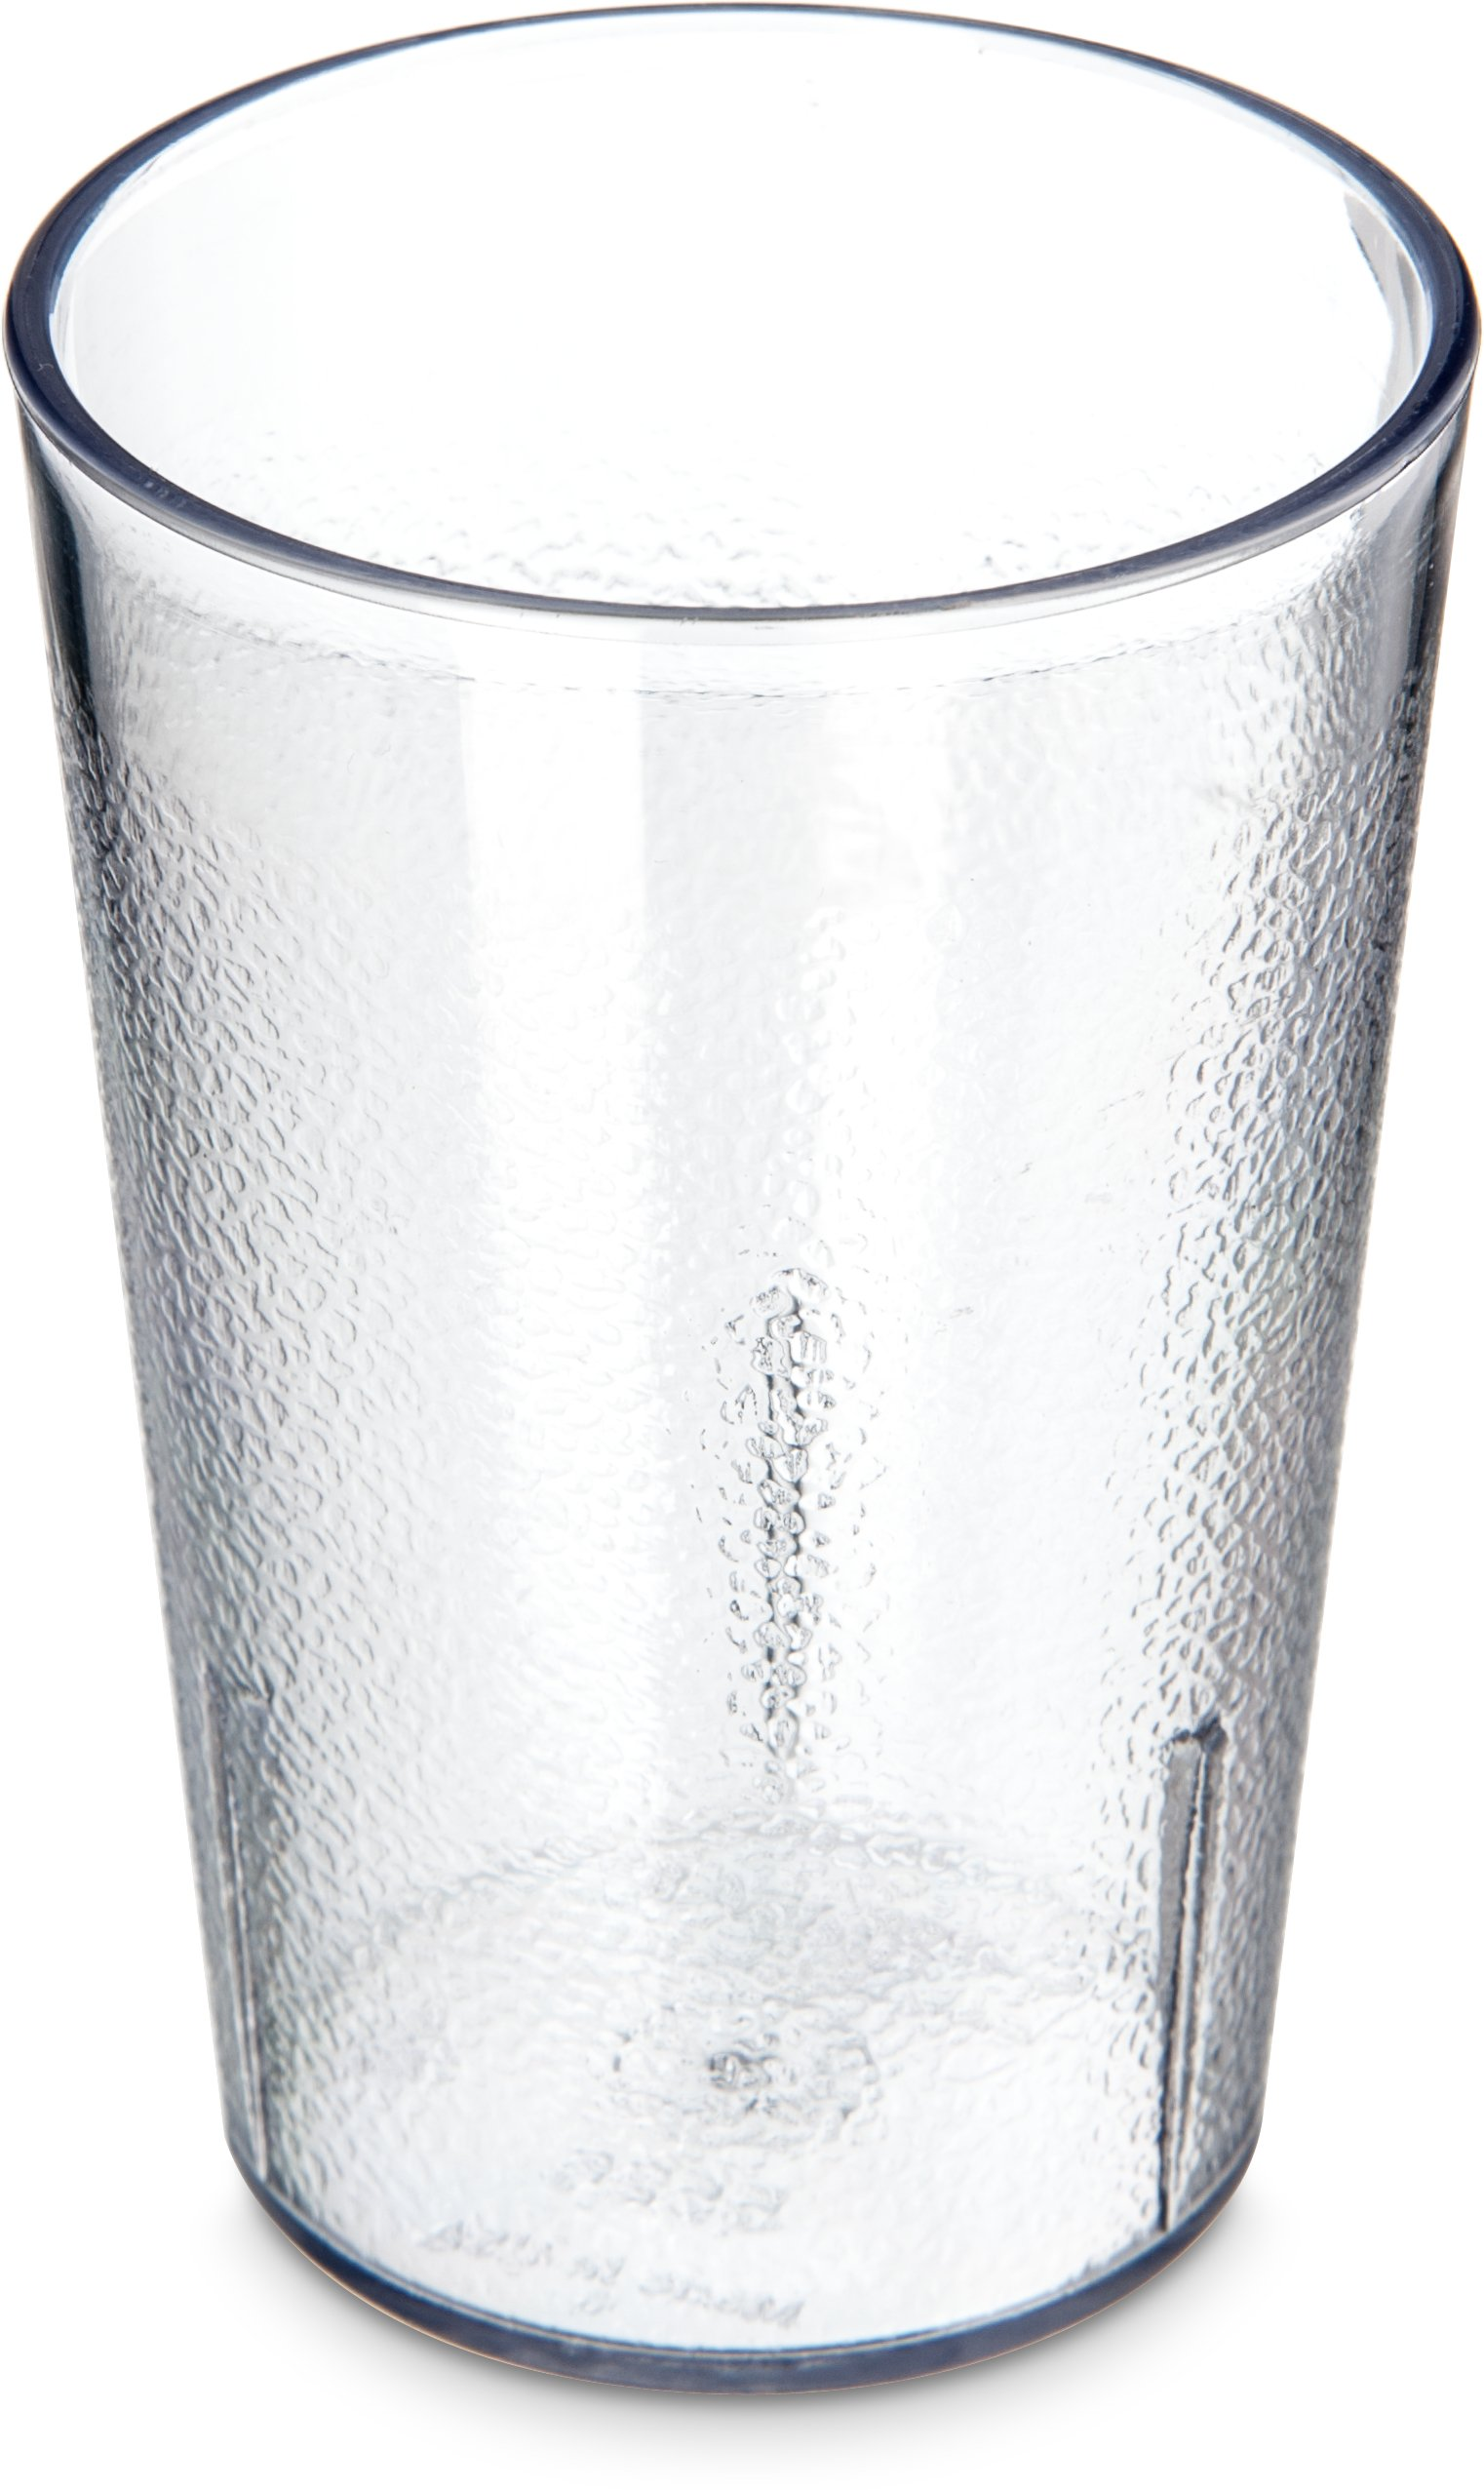 Carlisle 552607 BPA Free Stackable Shatter-Resistant Plastic Tumbler, 8 oz., Clear (Pack of 72)